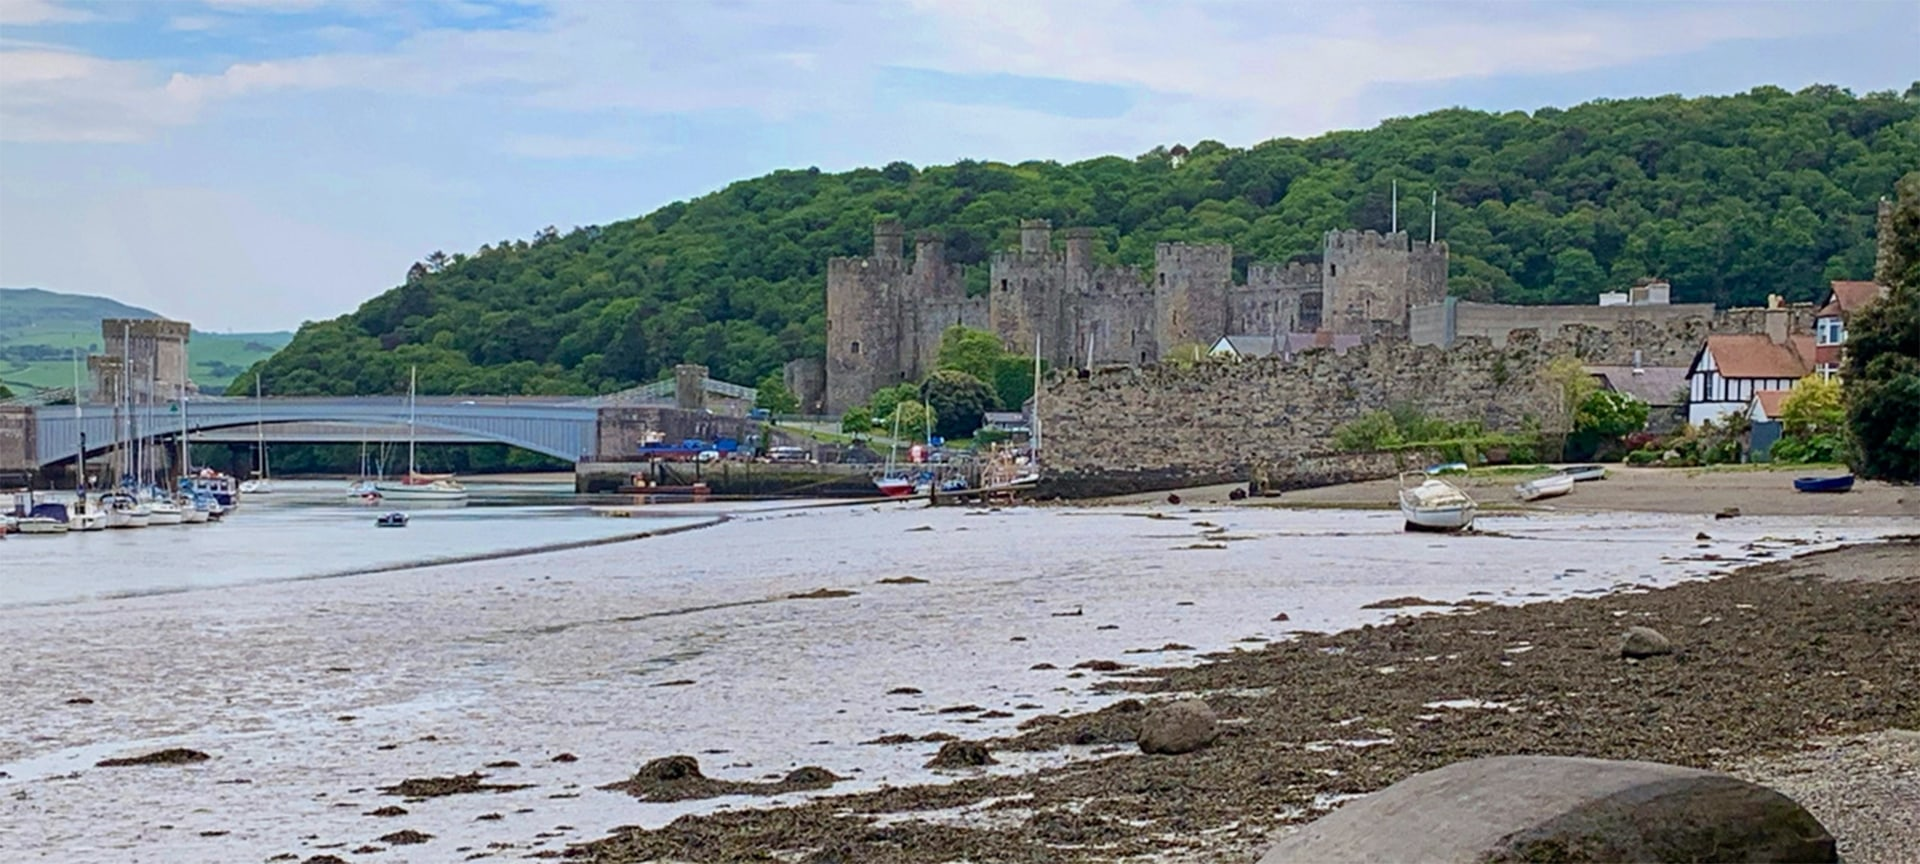 Conwy Castle's dark, brooding presence is no accident. When King Edward I built Conwy Castle in the late 13th century it was intended to dominate and intimidate – and it's still doing its job, competing with Snowdonia's rugged skyline and winning the battle for our attention. Is there another castle in Wales that evokes the atmosphere of medieval times so well? We don't think so...And we think you'll agree when you clamber up to the towers that seem to spring naturally from the dark rock on which they were built.